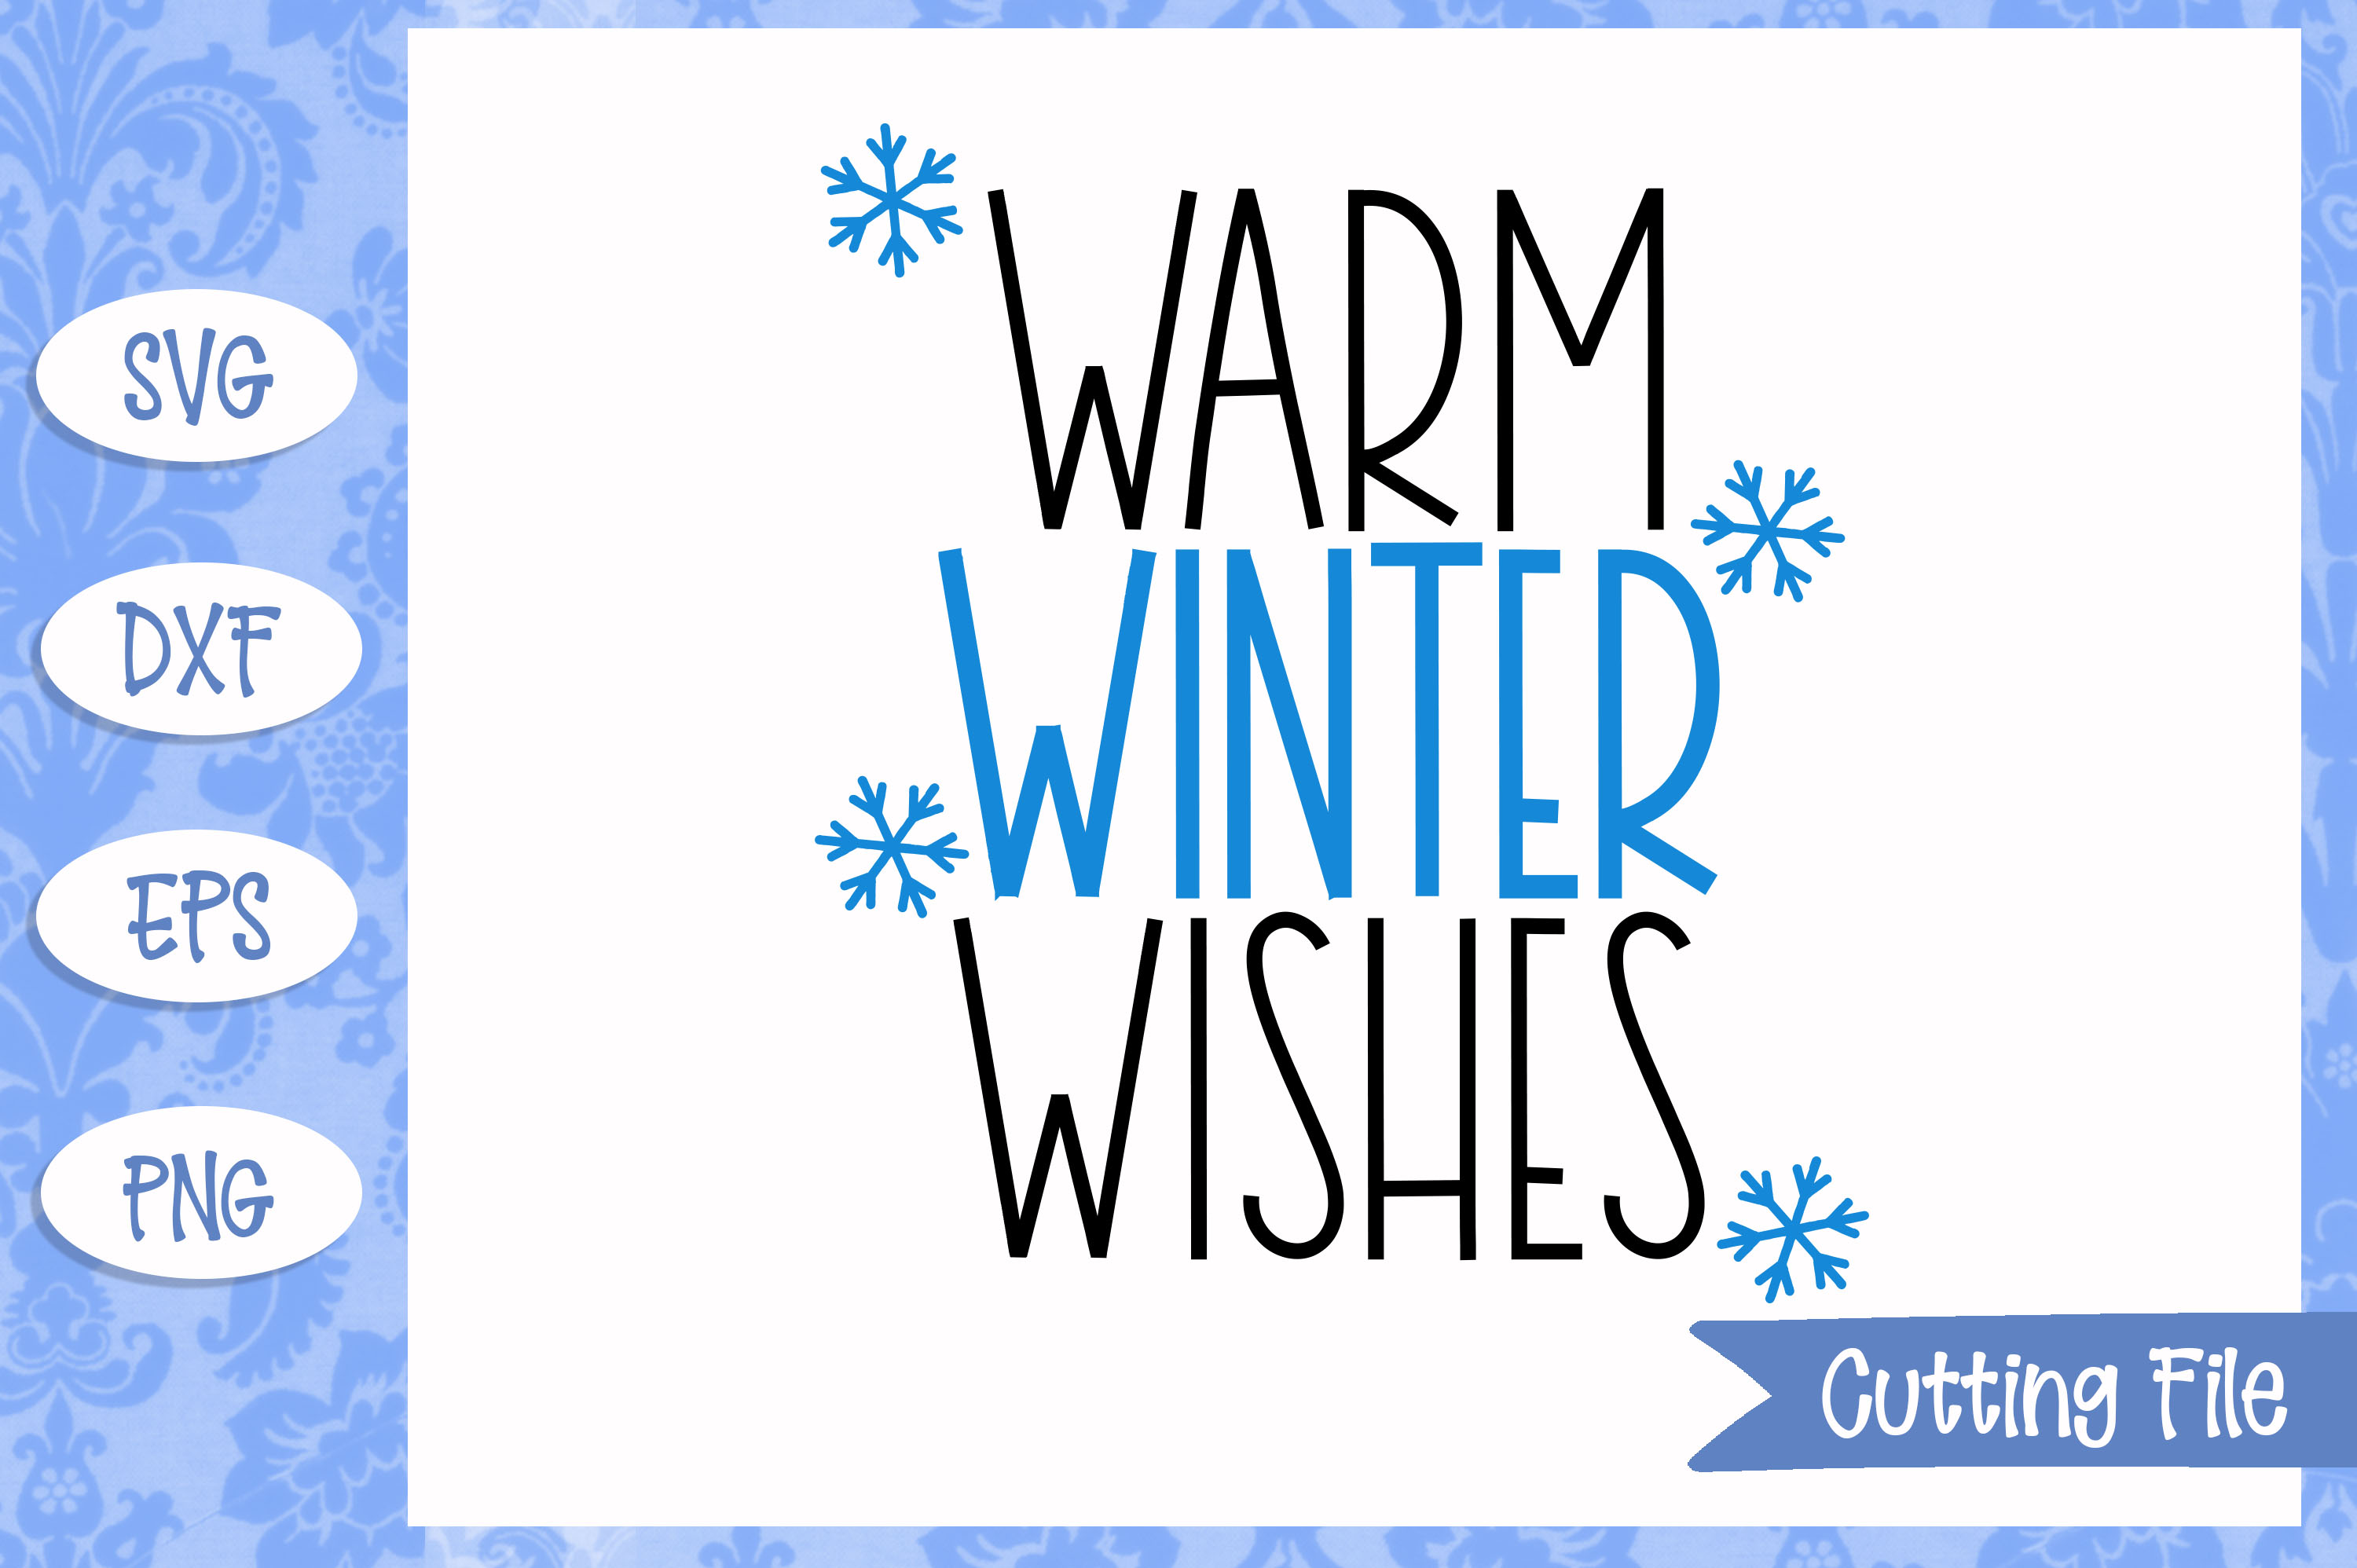 Warm winter wishes SVG File example image 1